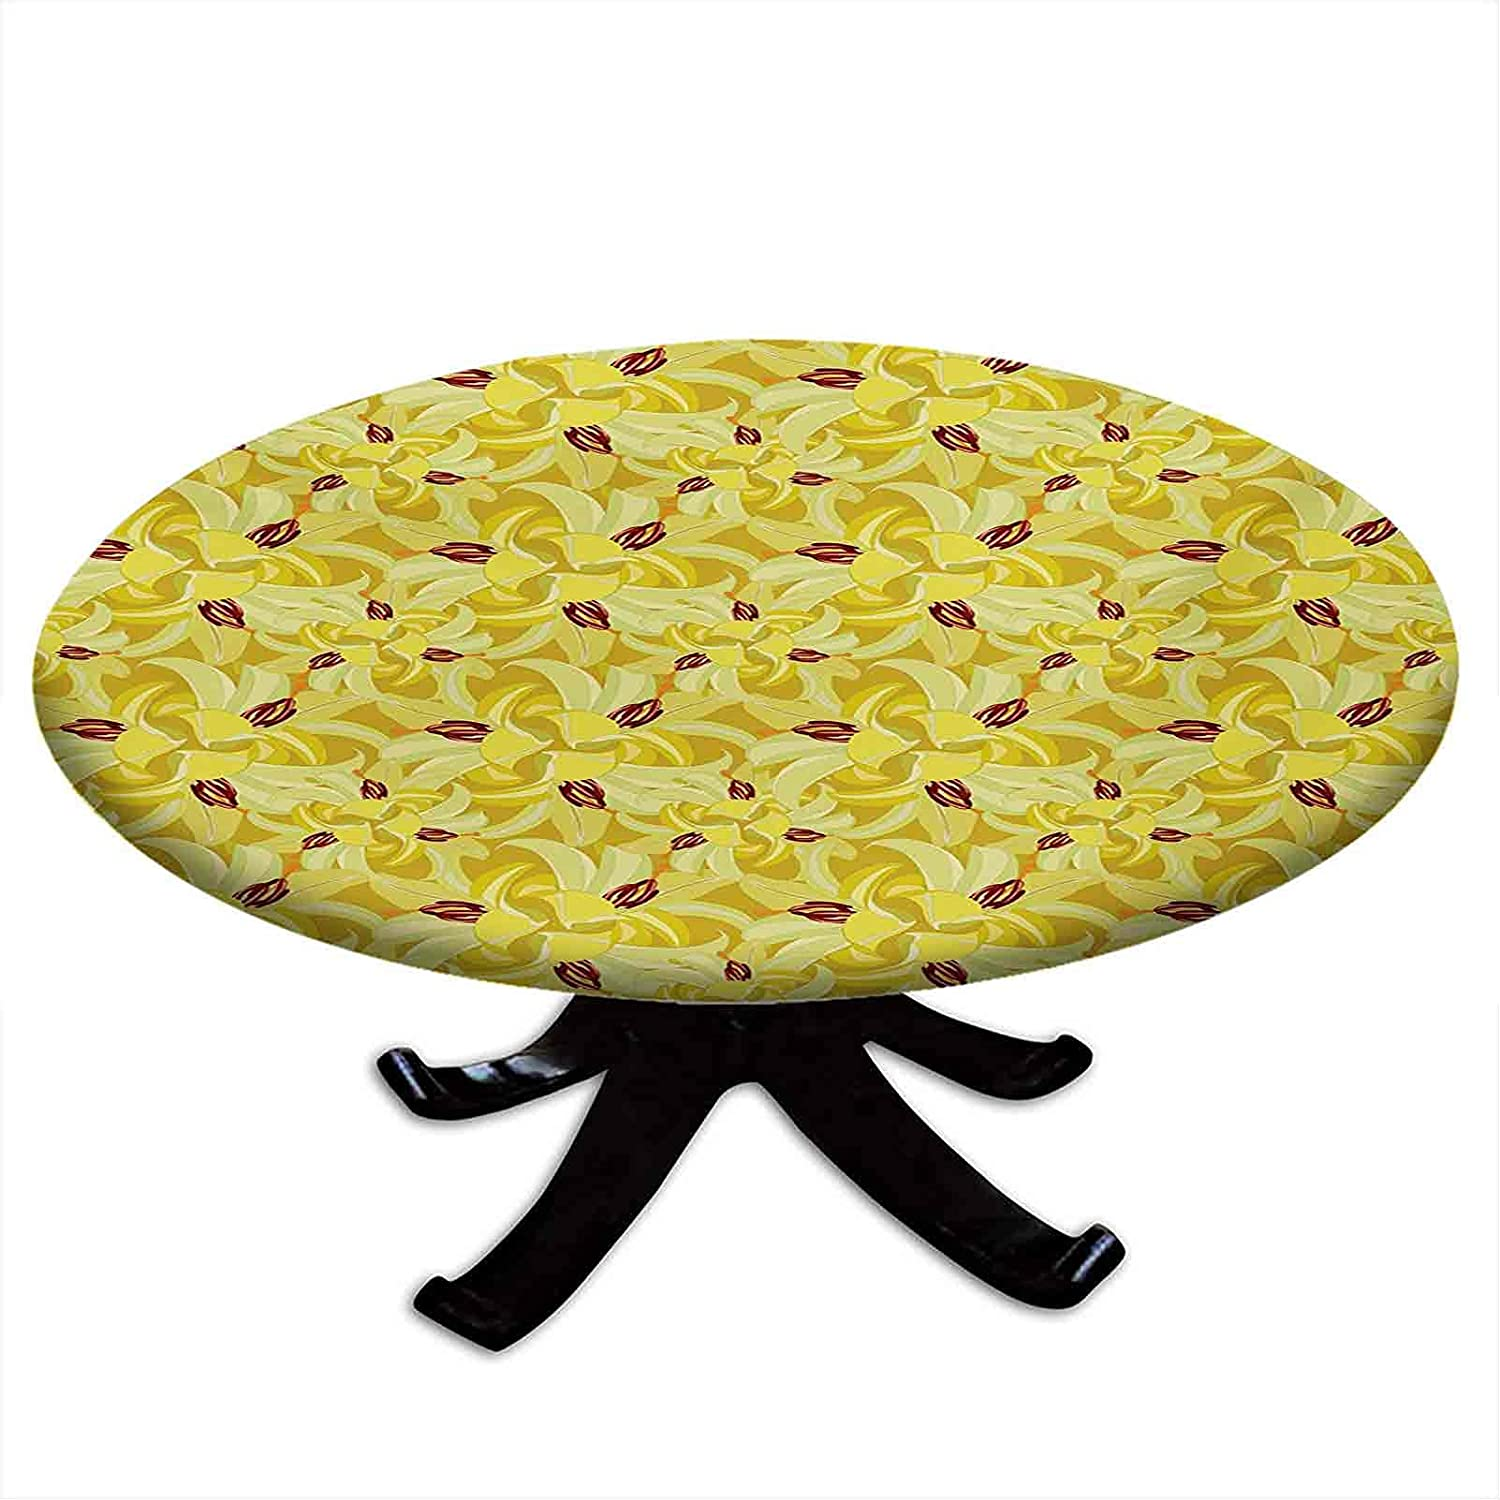 Round Fitted Floral Outstanding Tablecloth Max 58% OFF Exotic Haw Flowers Lily Tropical